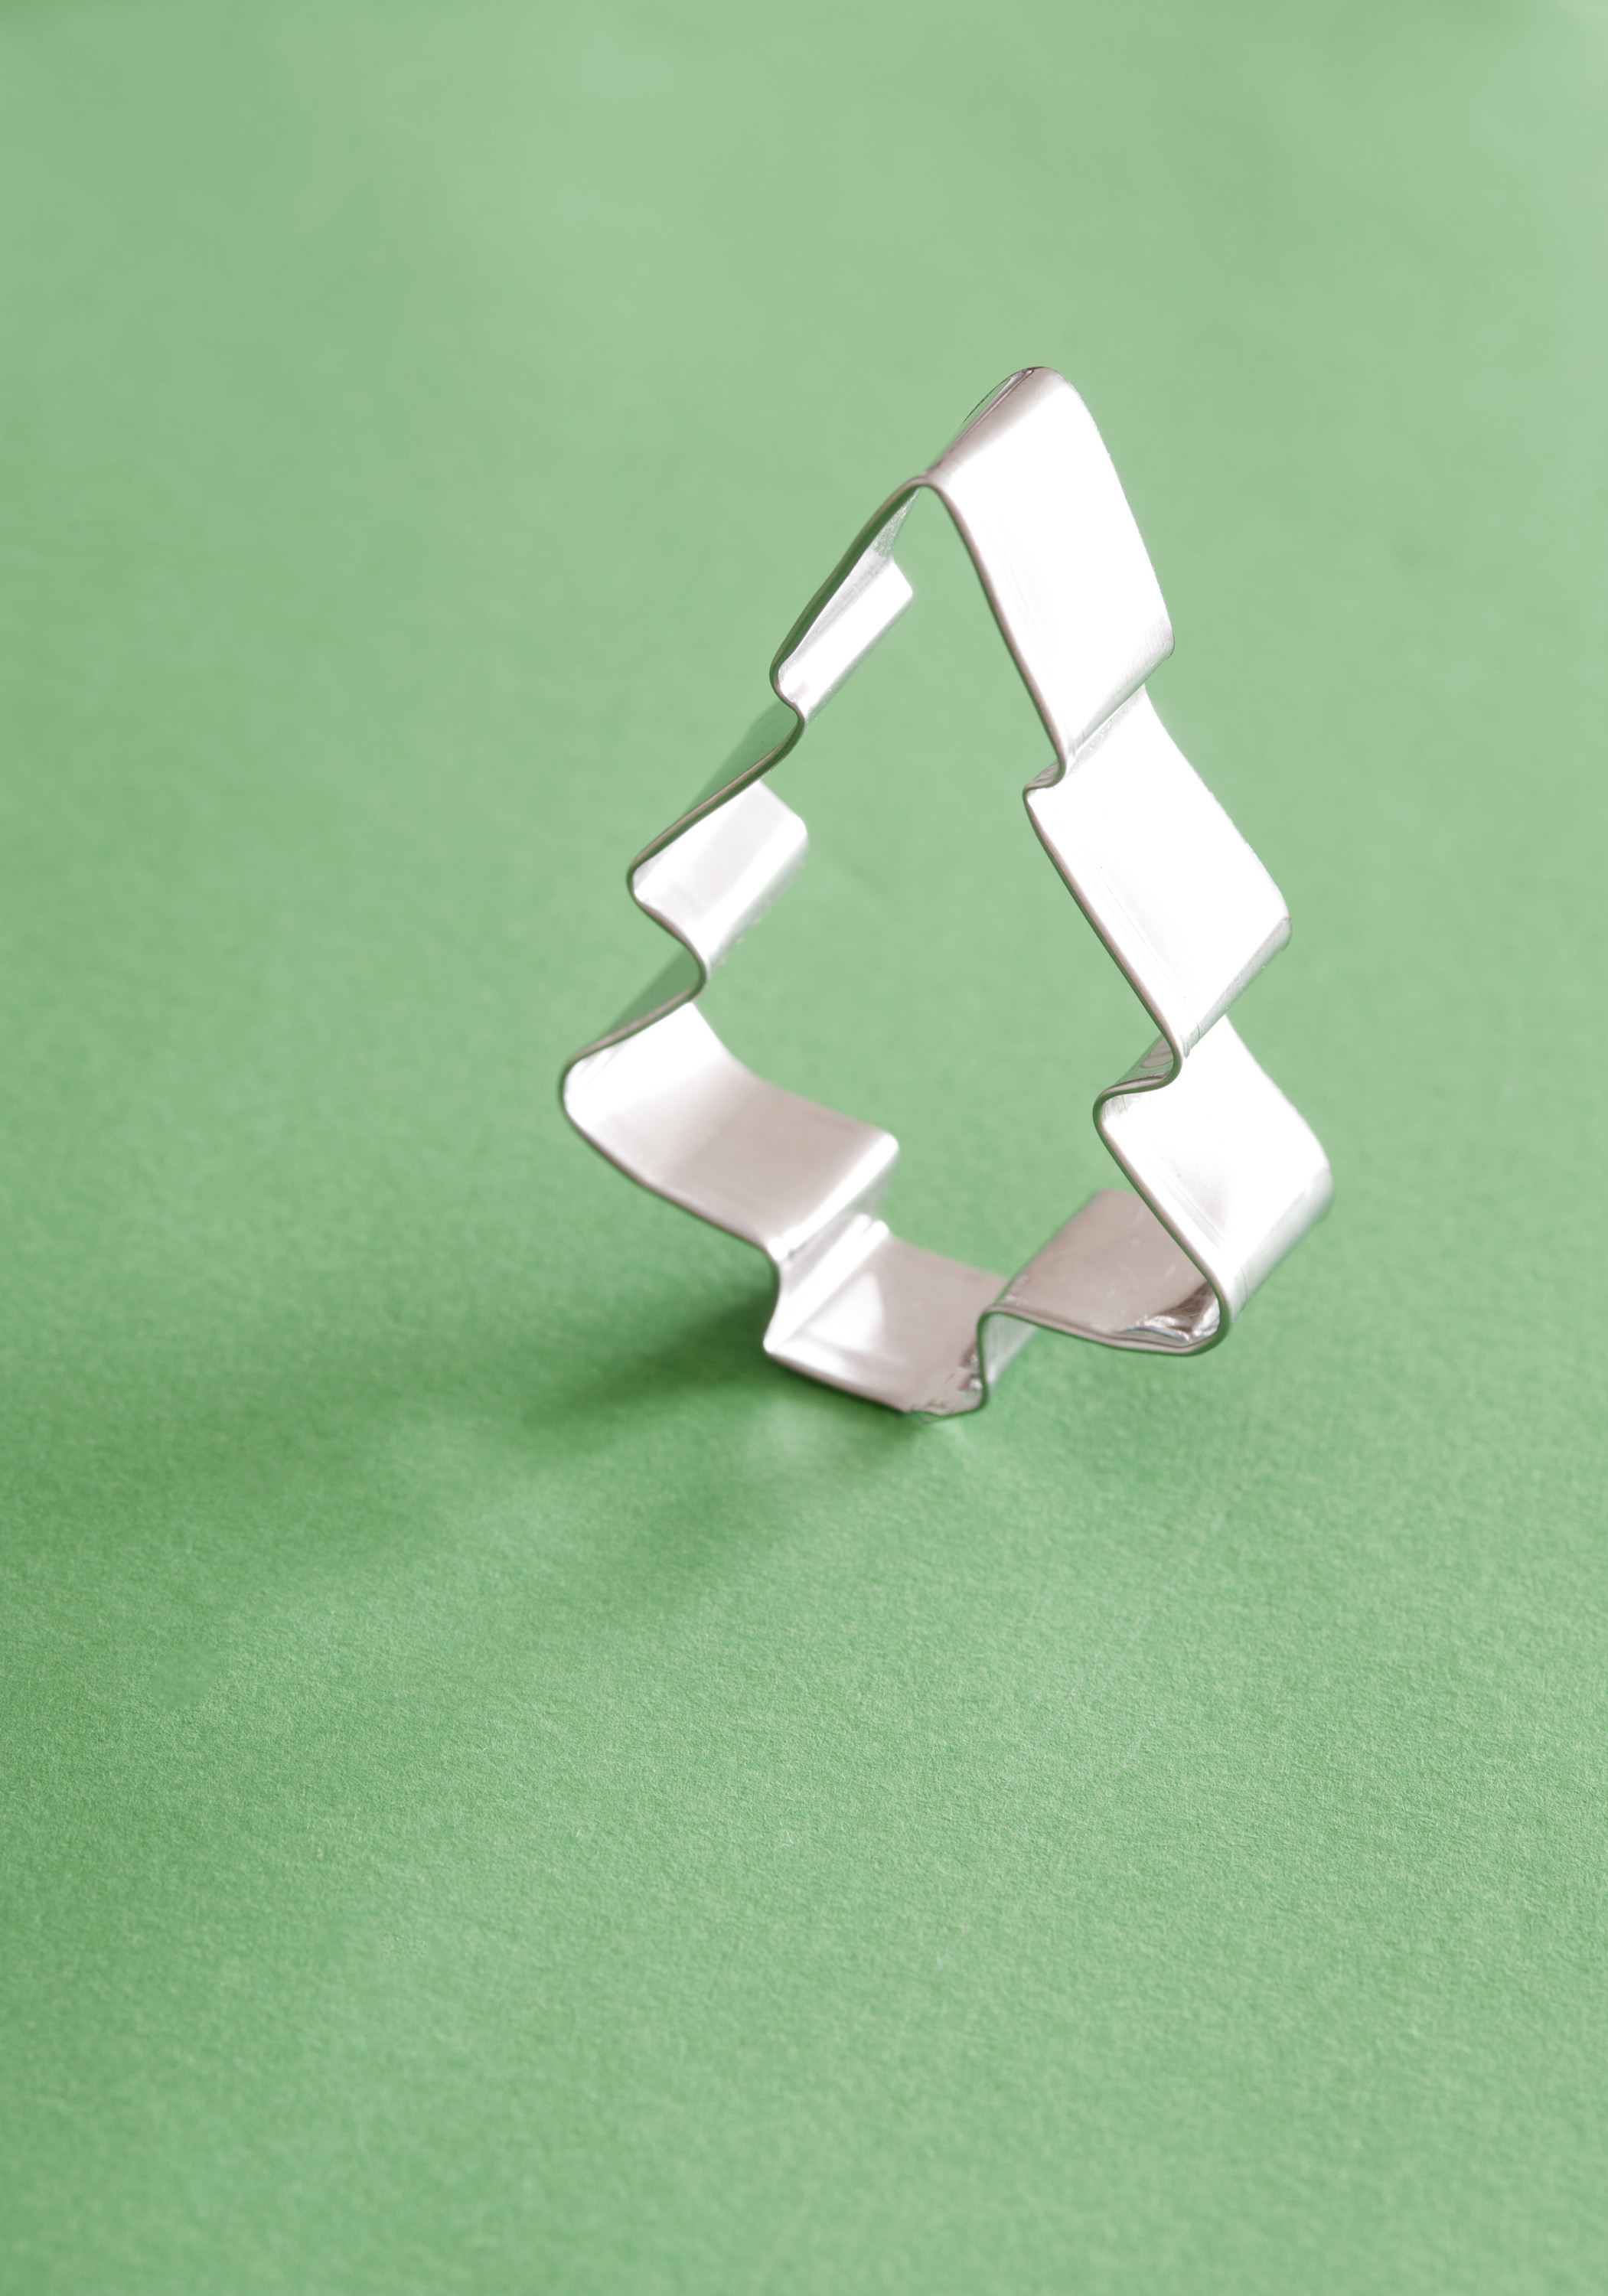 Close-up of Christmas tree cookie cutter on green table